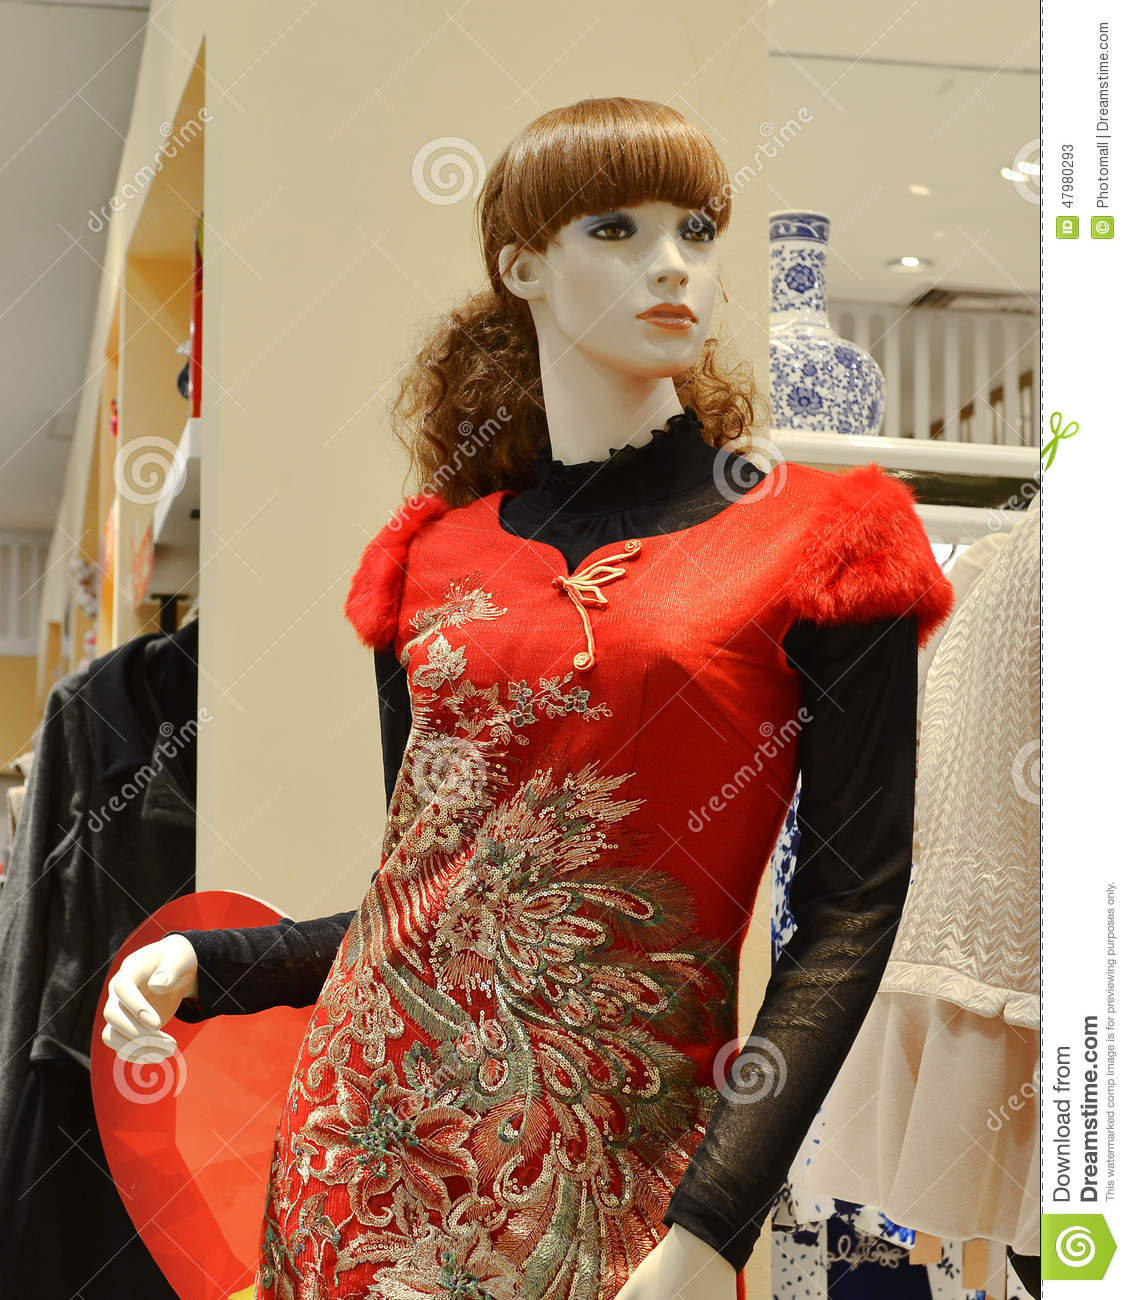 red-chinese-traditional-clothing-phoenix-pattern-clothing-store